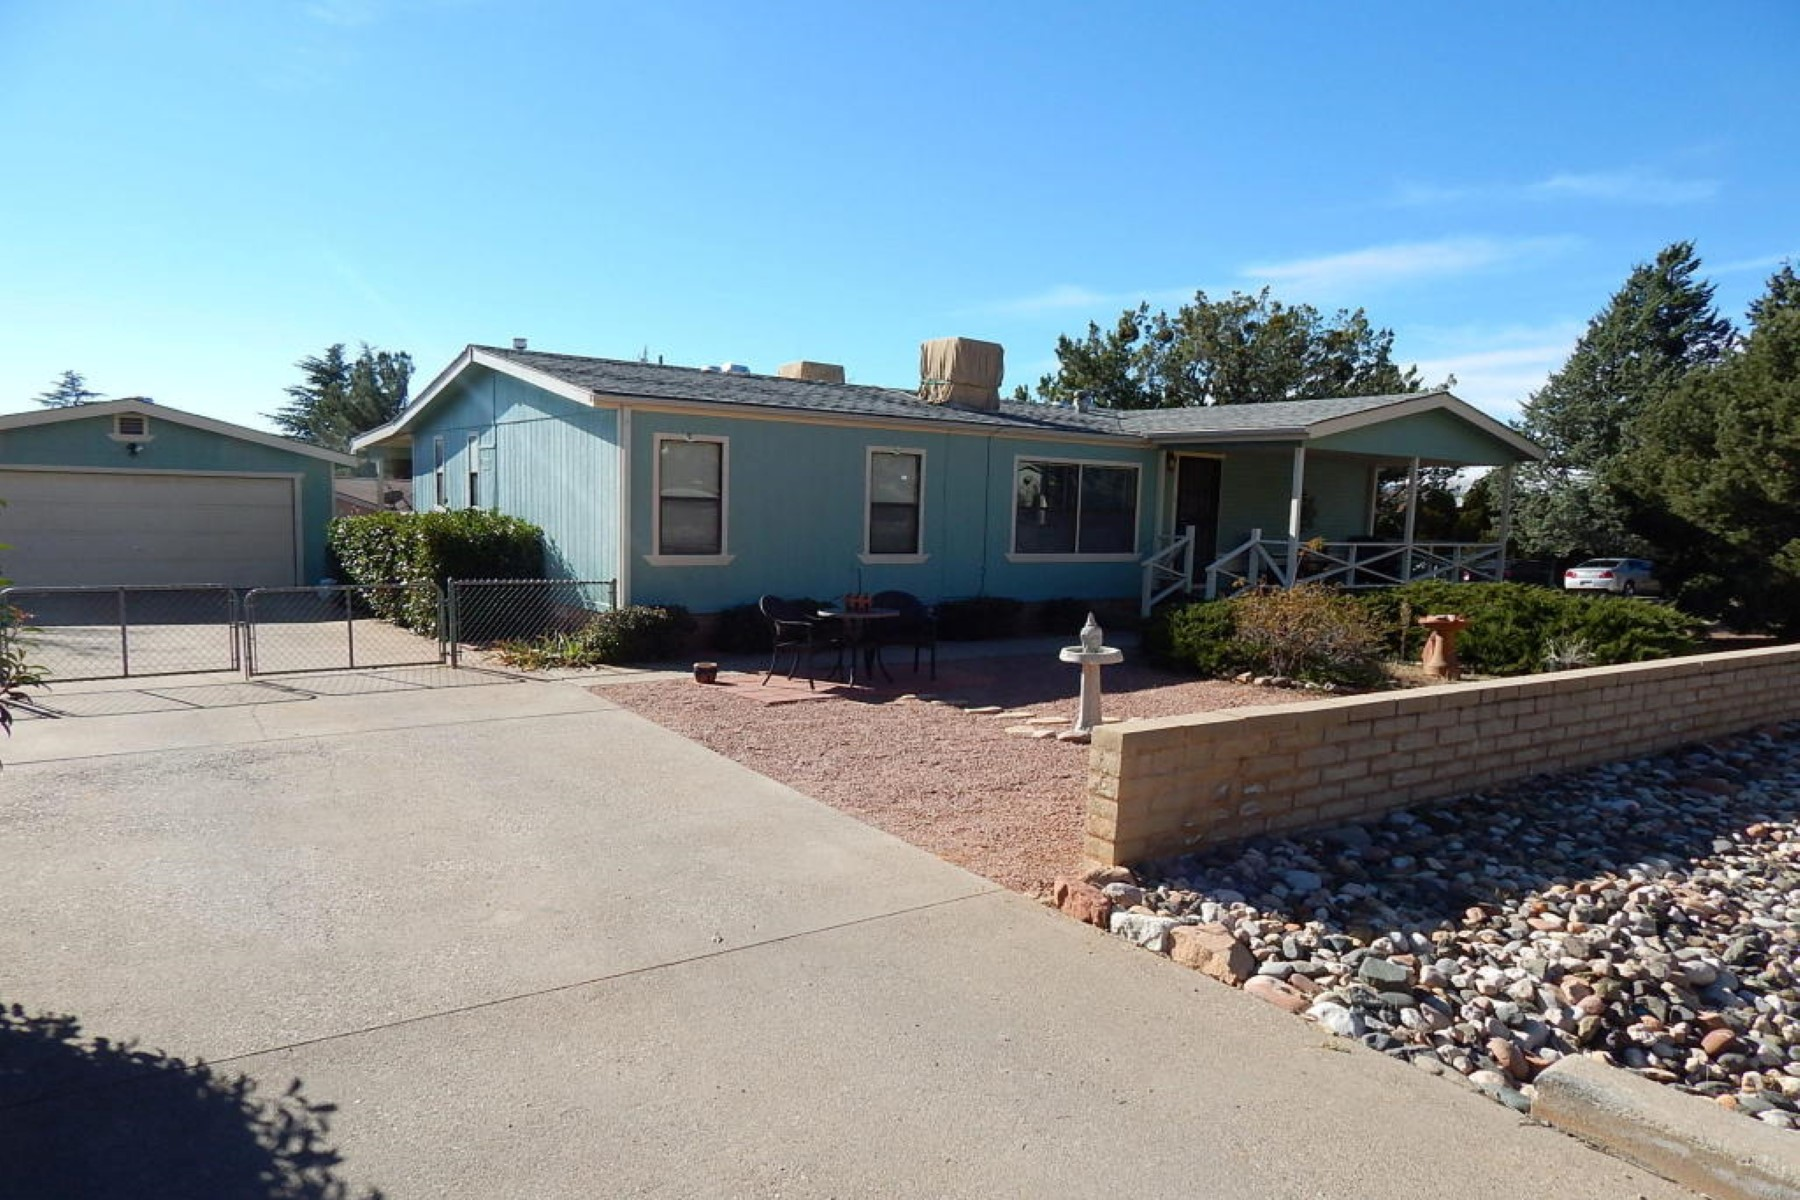 一戸建て のために 売買 アット Newly upgraded home with newer Air Conditioning and appliances 2595 Metate Drive Sedona, アリゾナ 86336 アメリカ合衆国